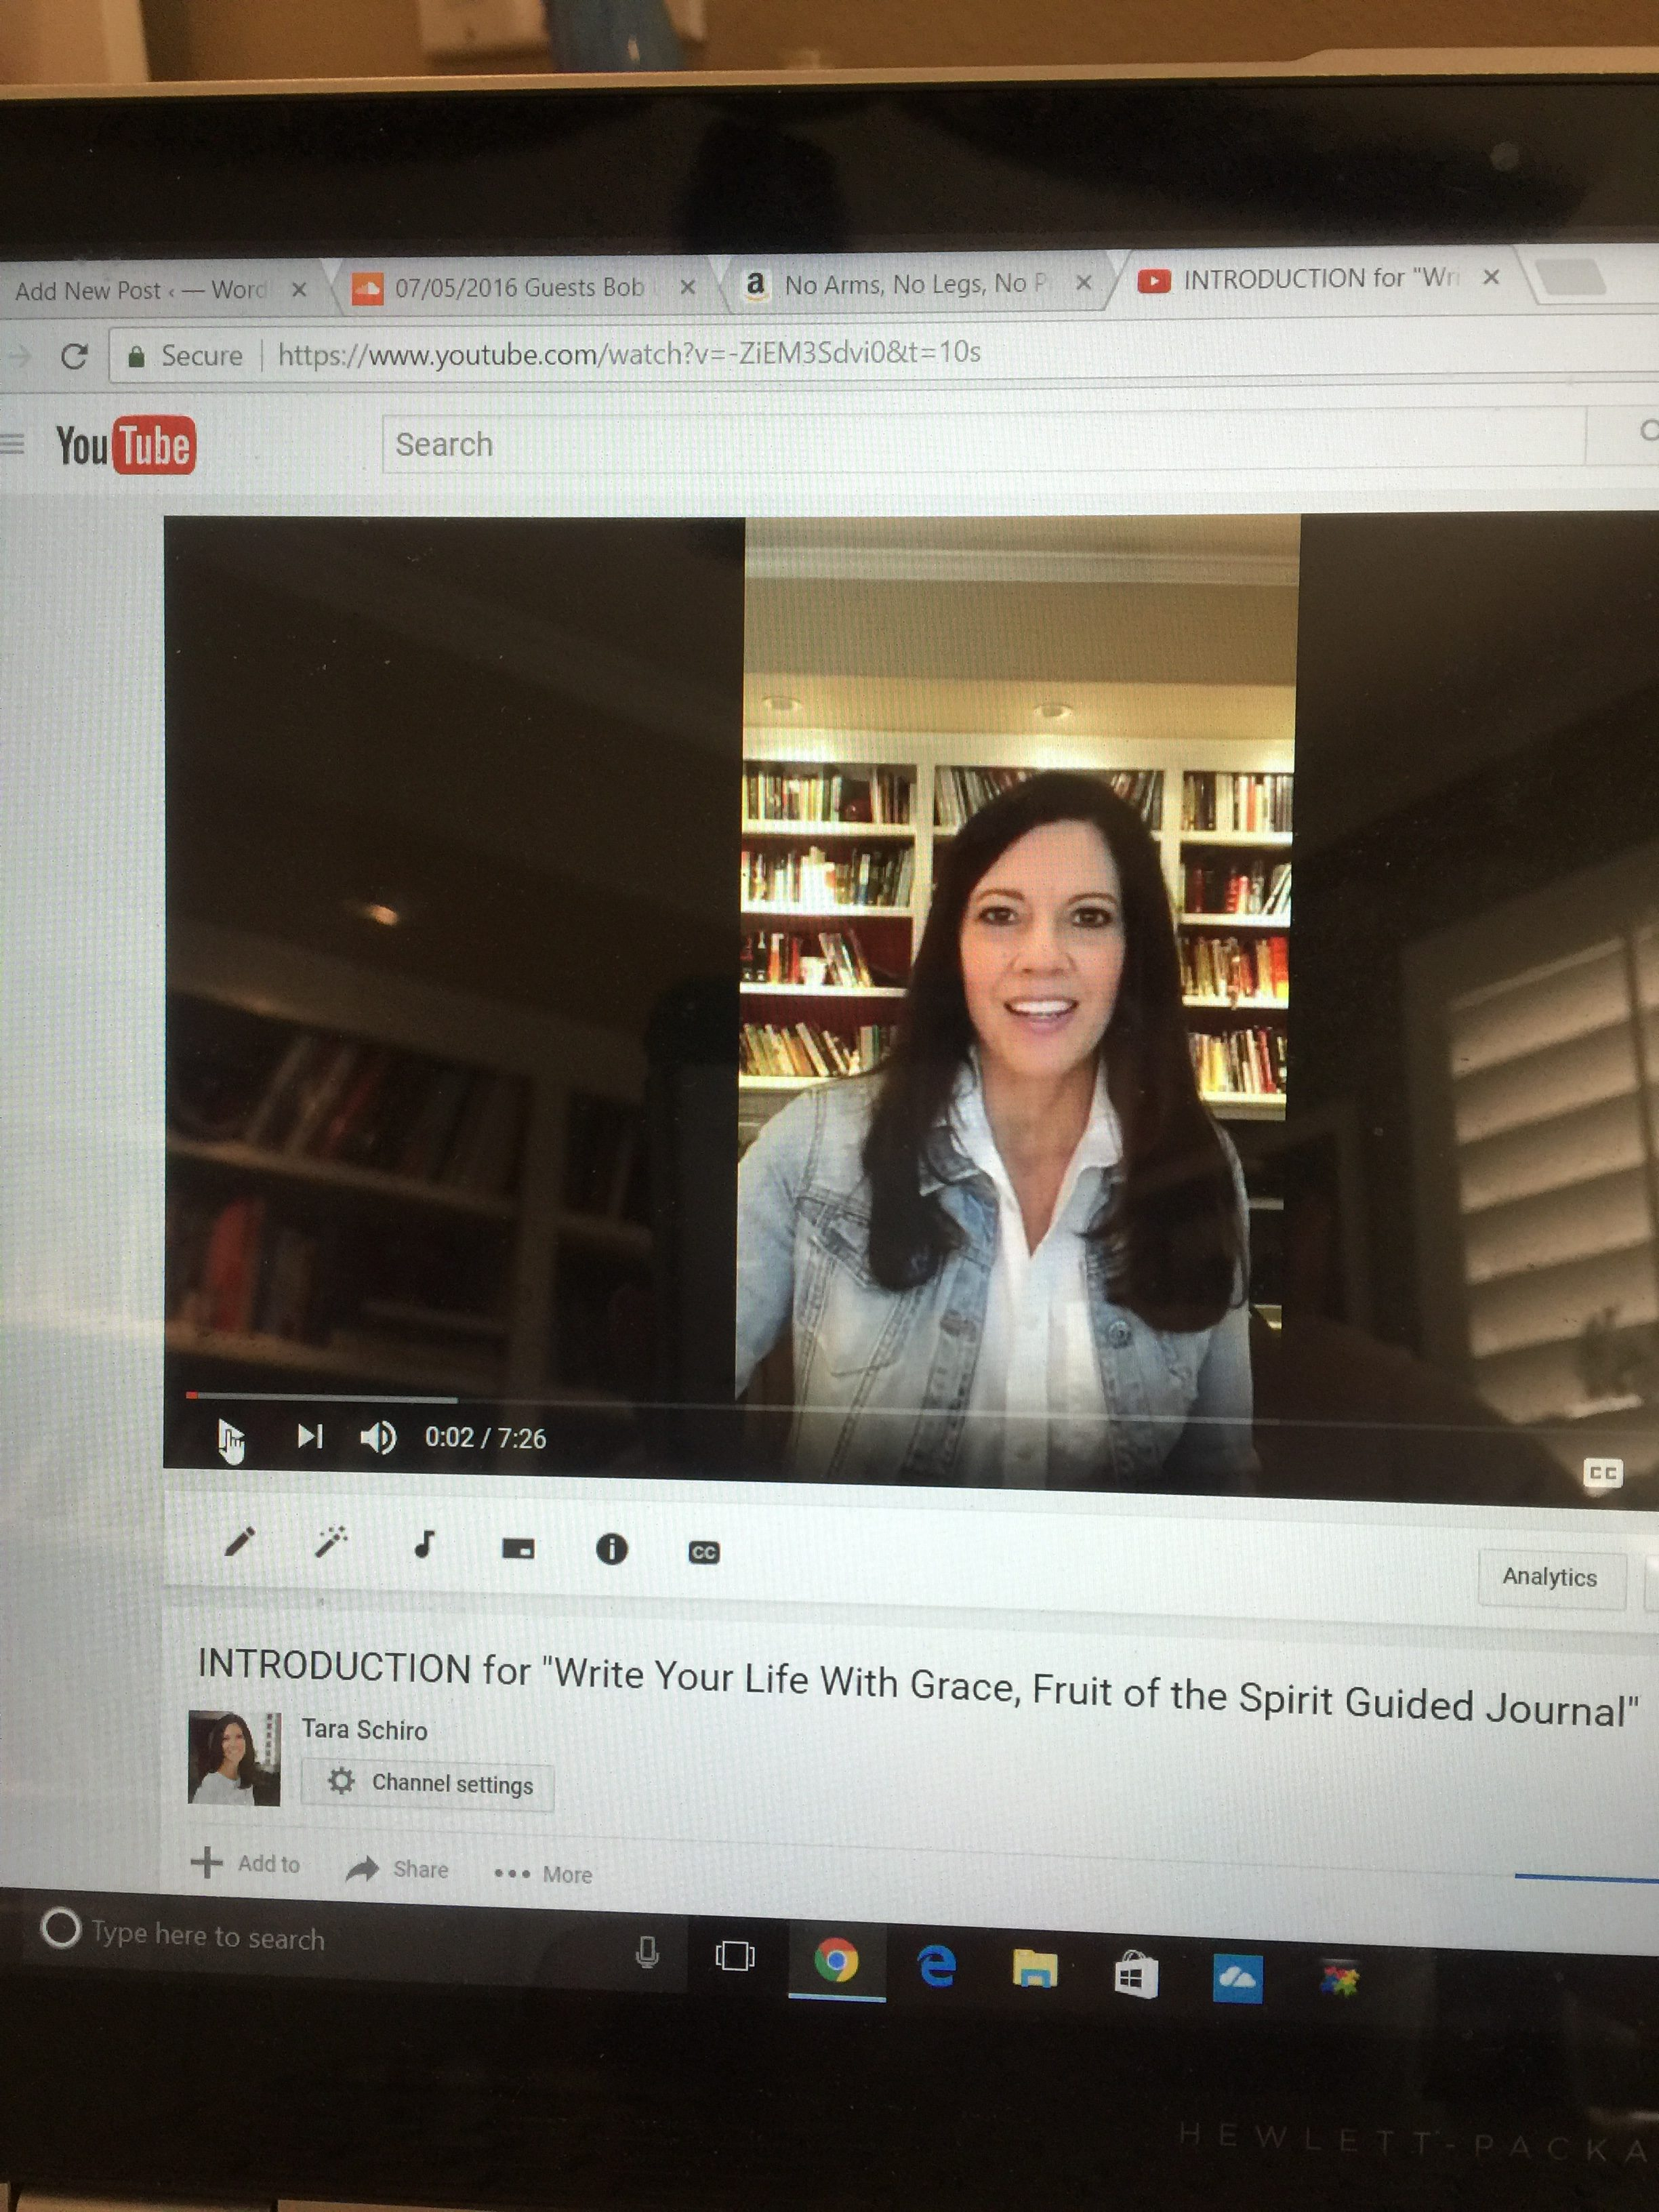 "Video Introduction for ""Write Your Life With Grace, Fruit of the Spirit Guided Journal"" by Tara Schiro"